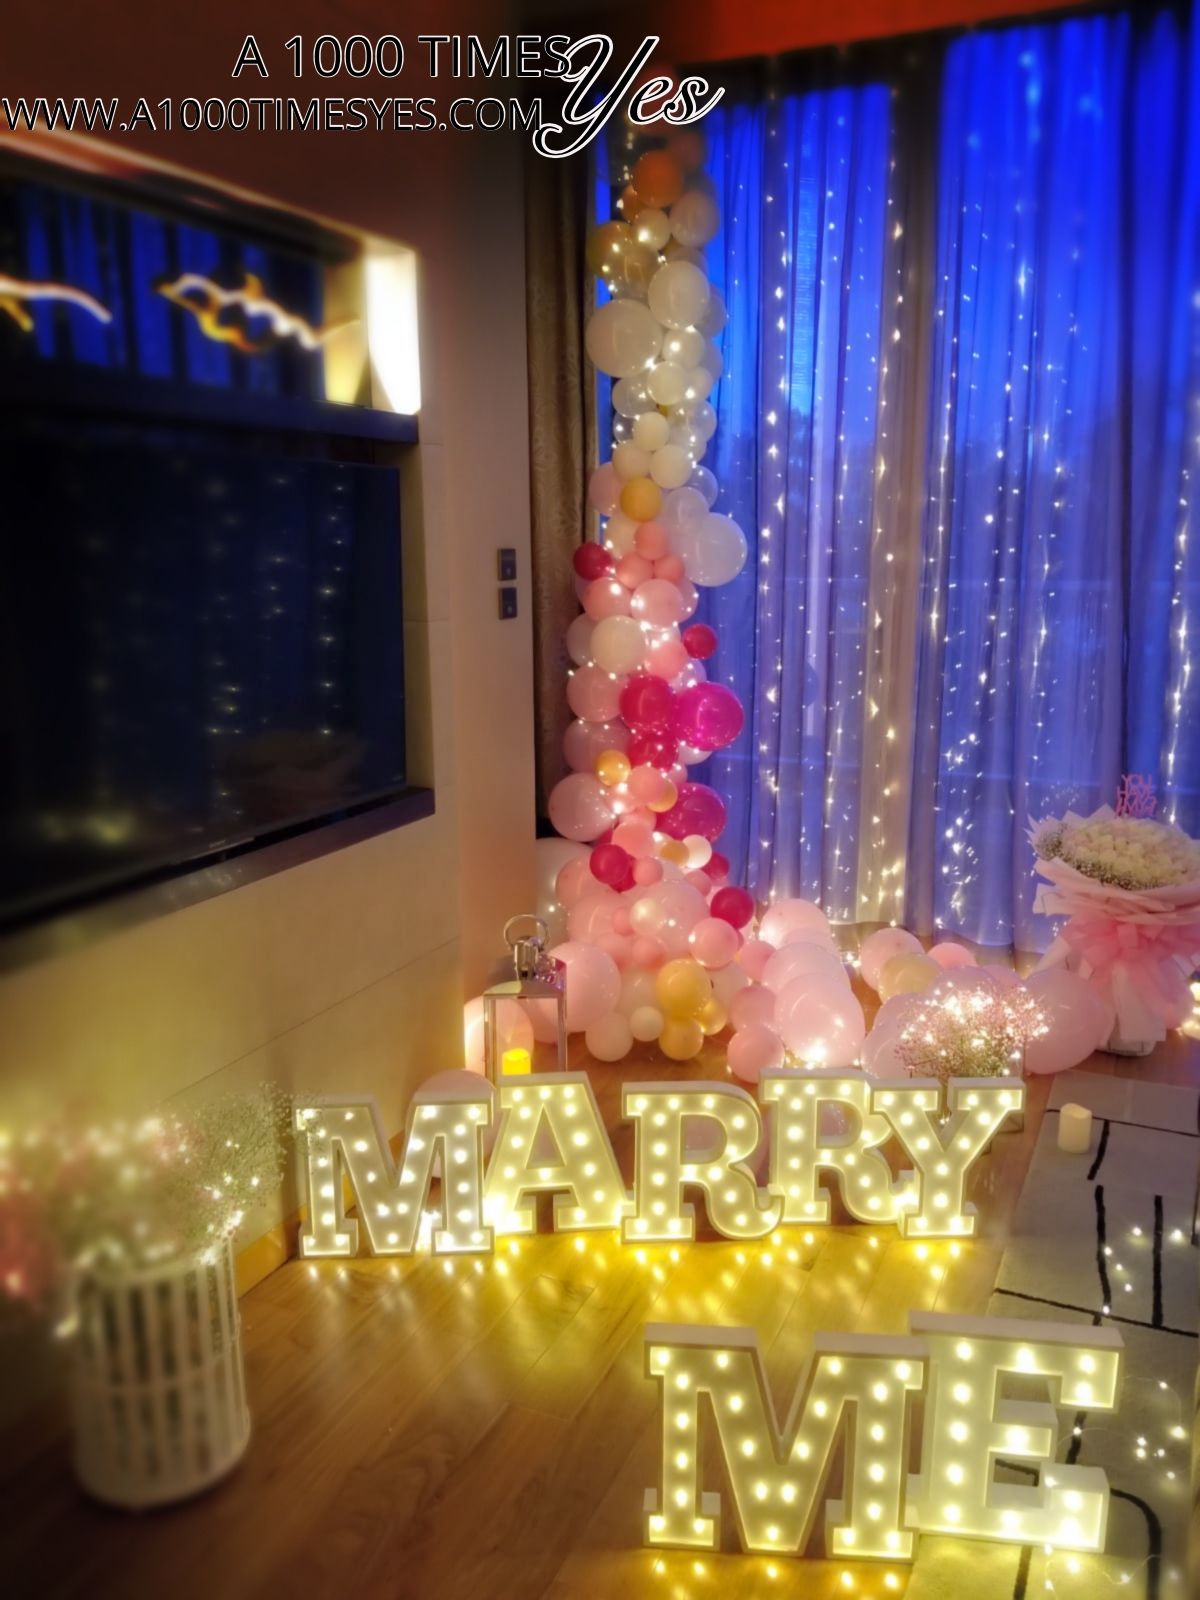 Make normality feel special A 1000 times Yes decorations